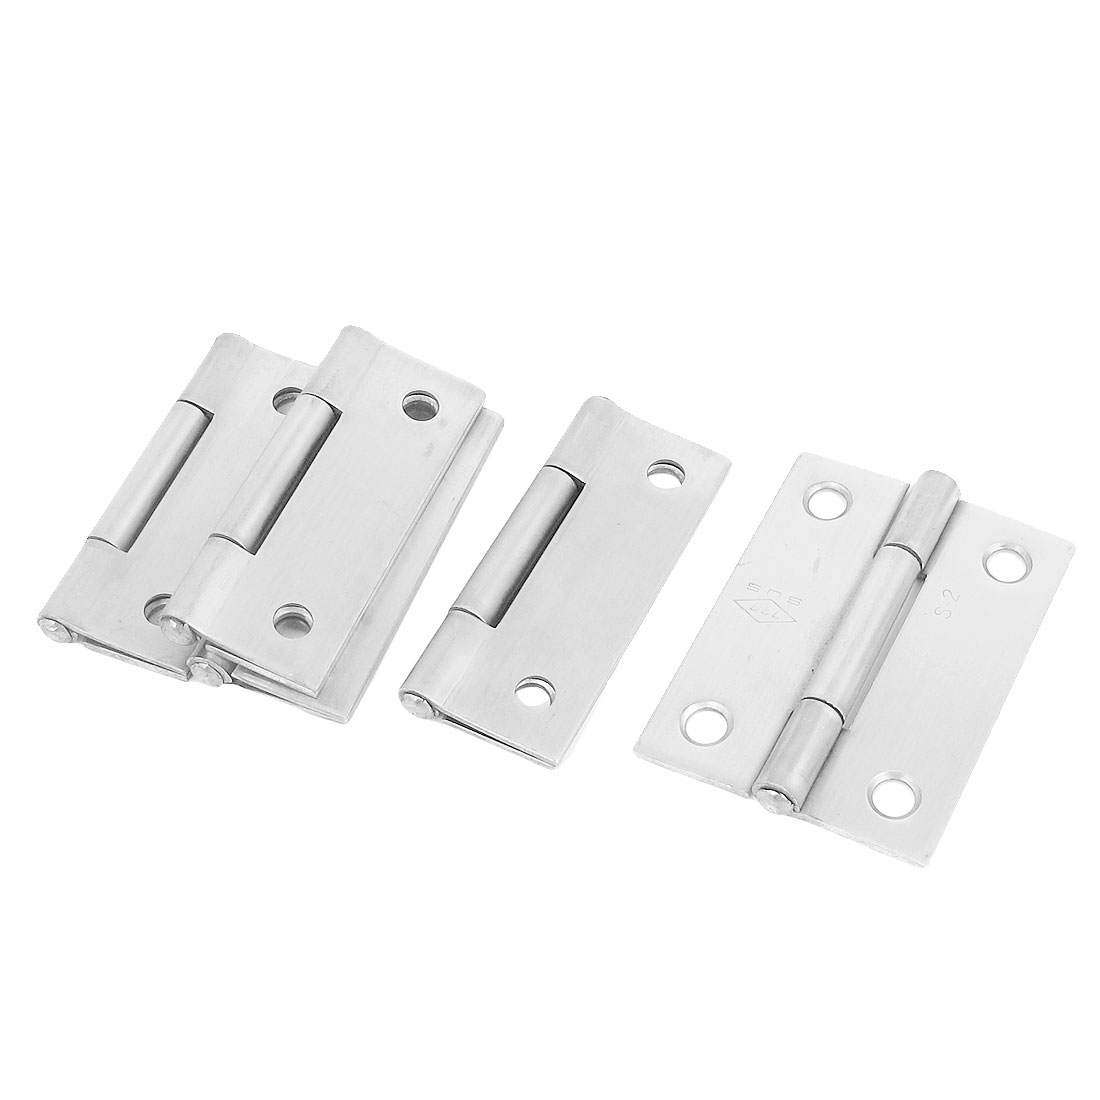 5 Pcs 50mmx37mm Stainless Steel Folding Furniture Cabinet Door Butt Hinge